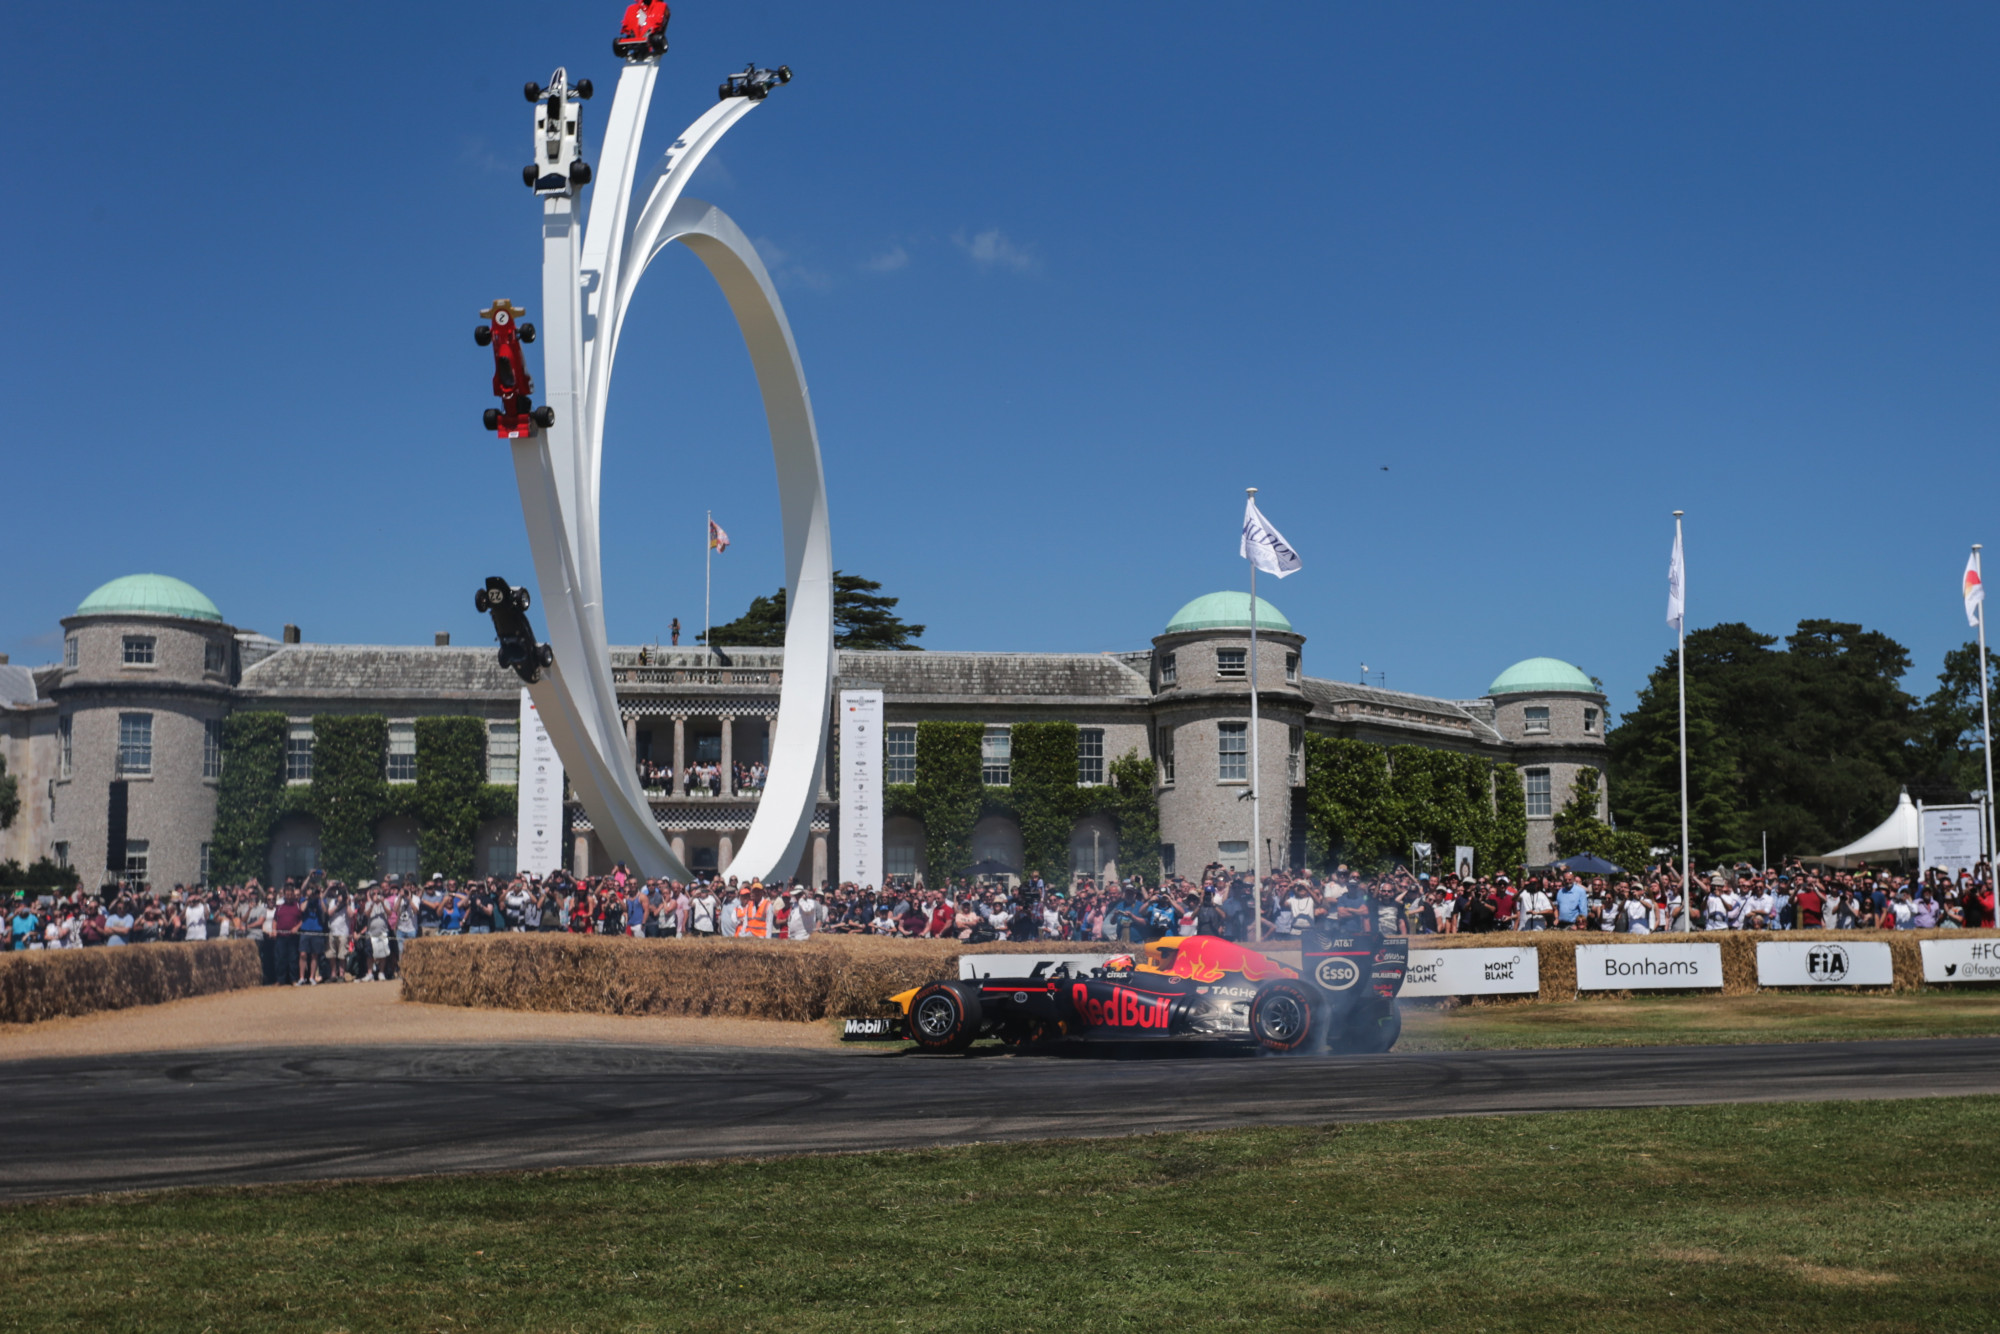 2020 Goodwood Festival of Speed postponed to late summer